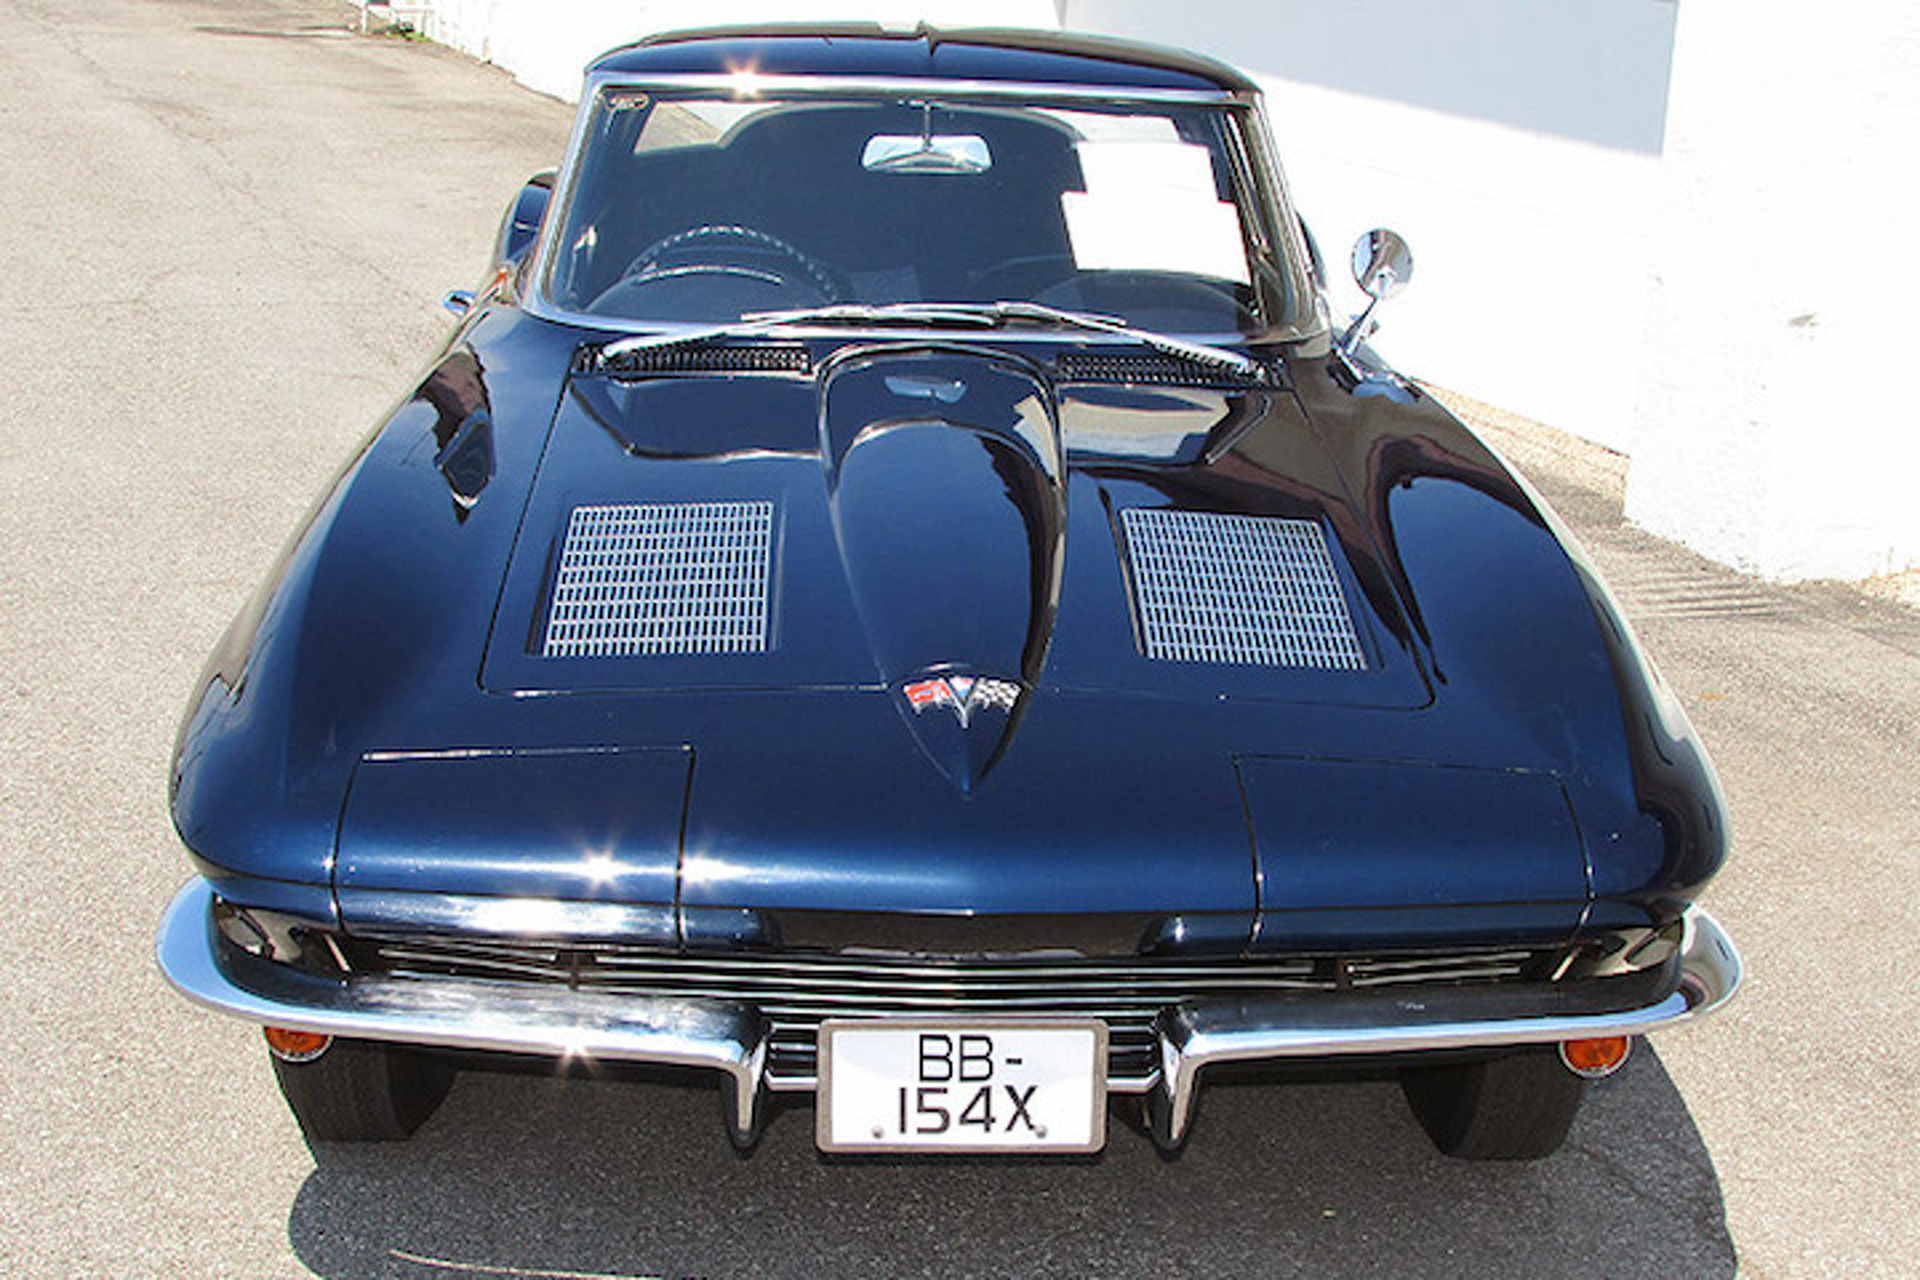 The World's Only Right-Hand Drive 1963 Corvette Z06 is Still